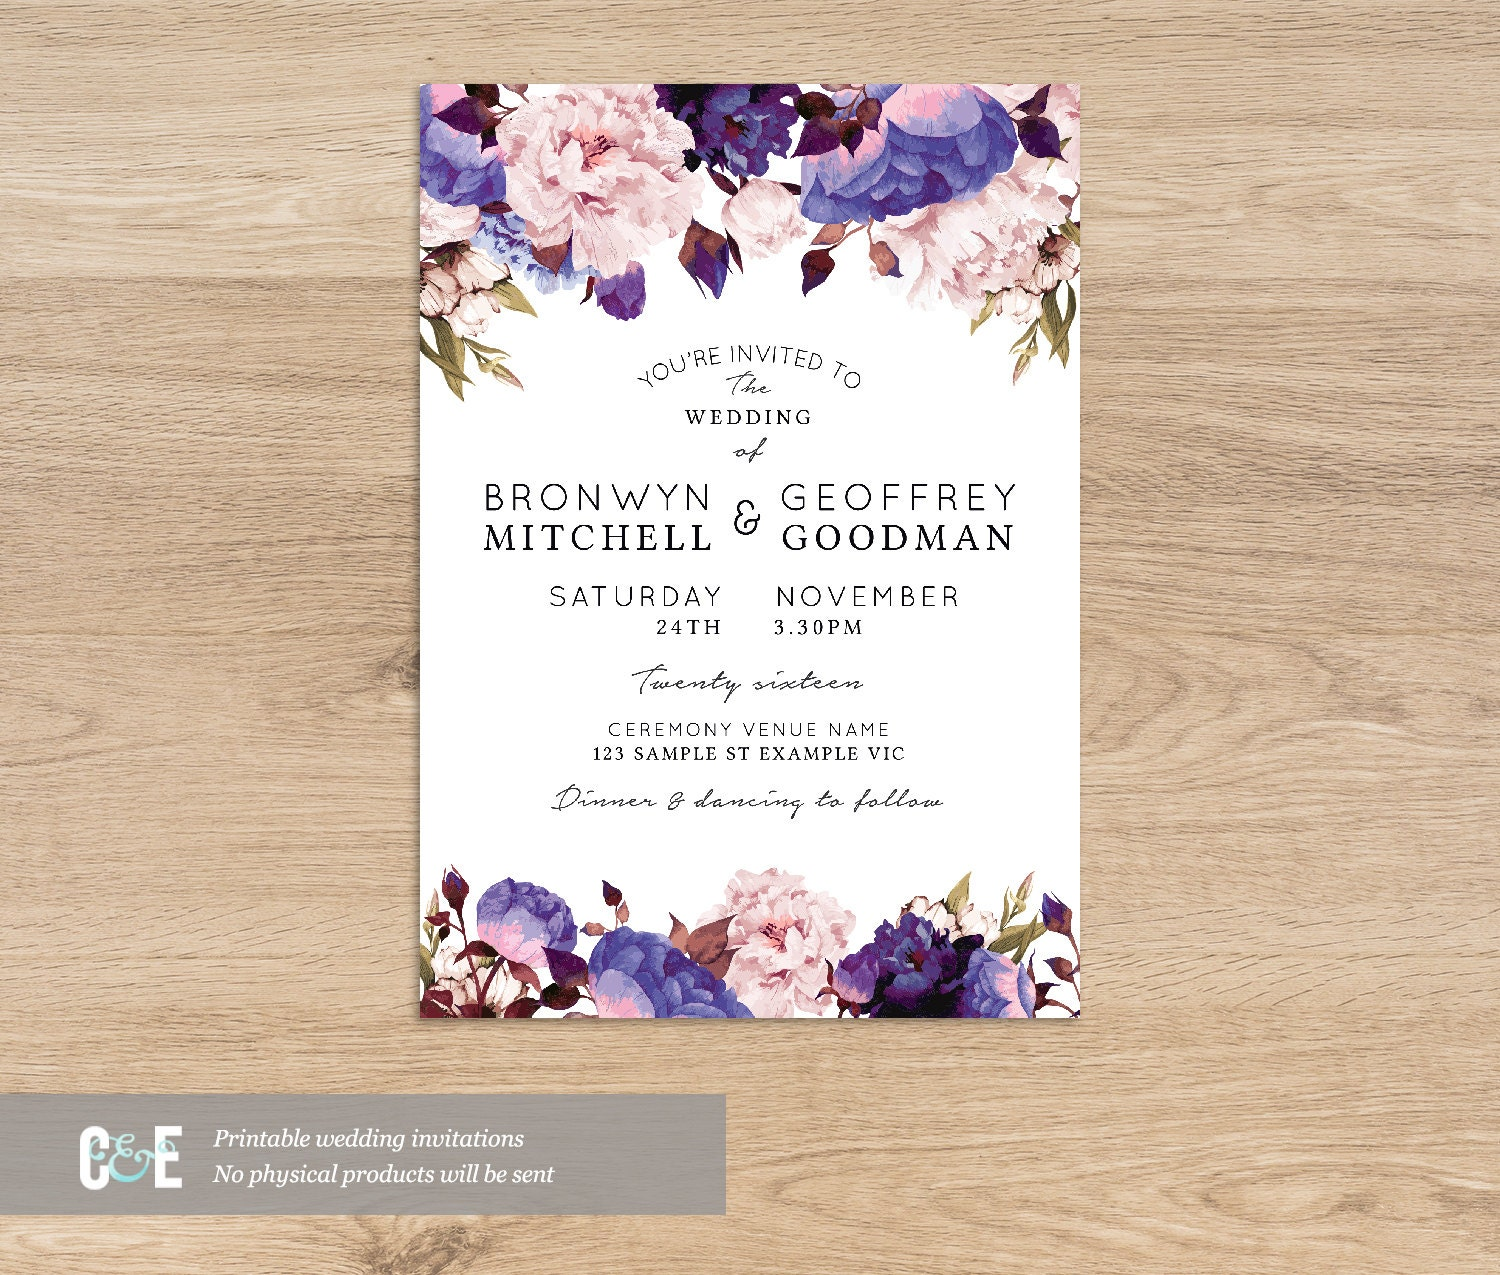 Amazing Wedding Invitation Font Wedding Ideas